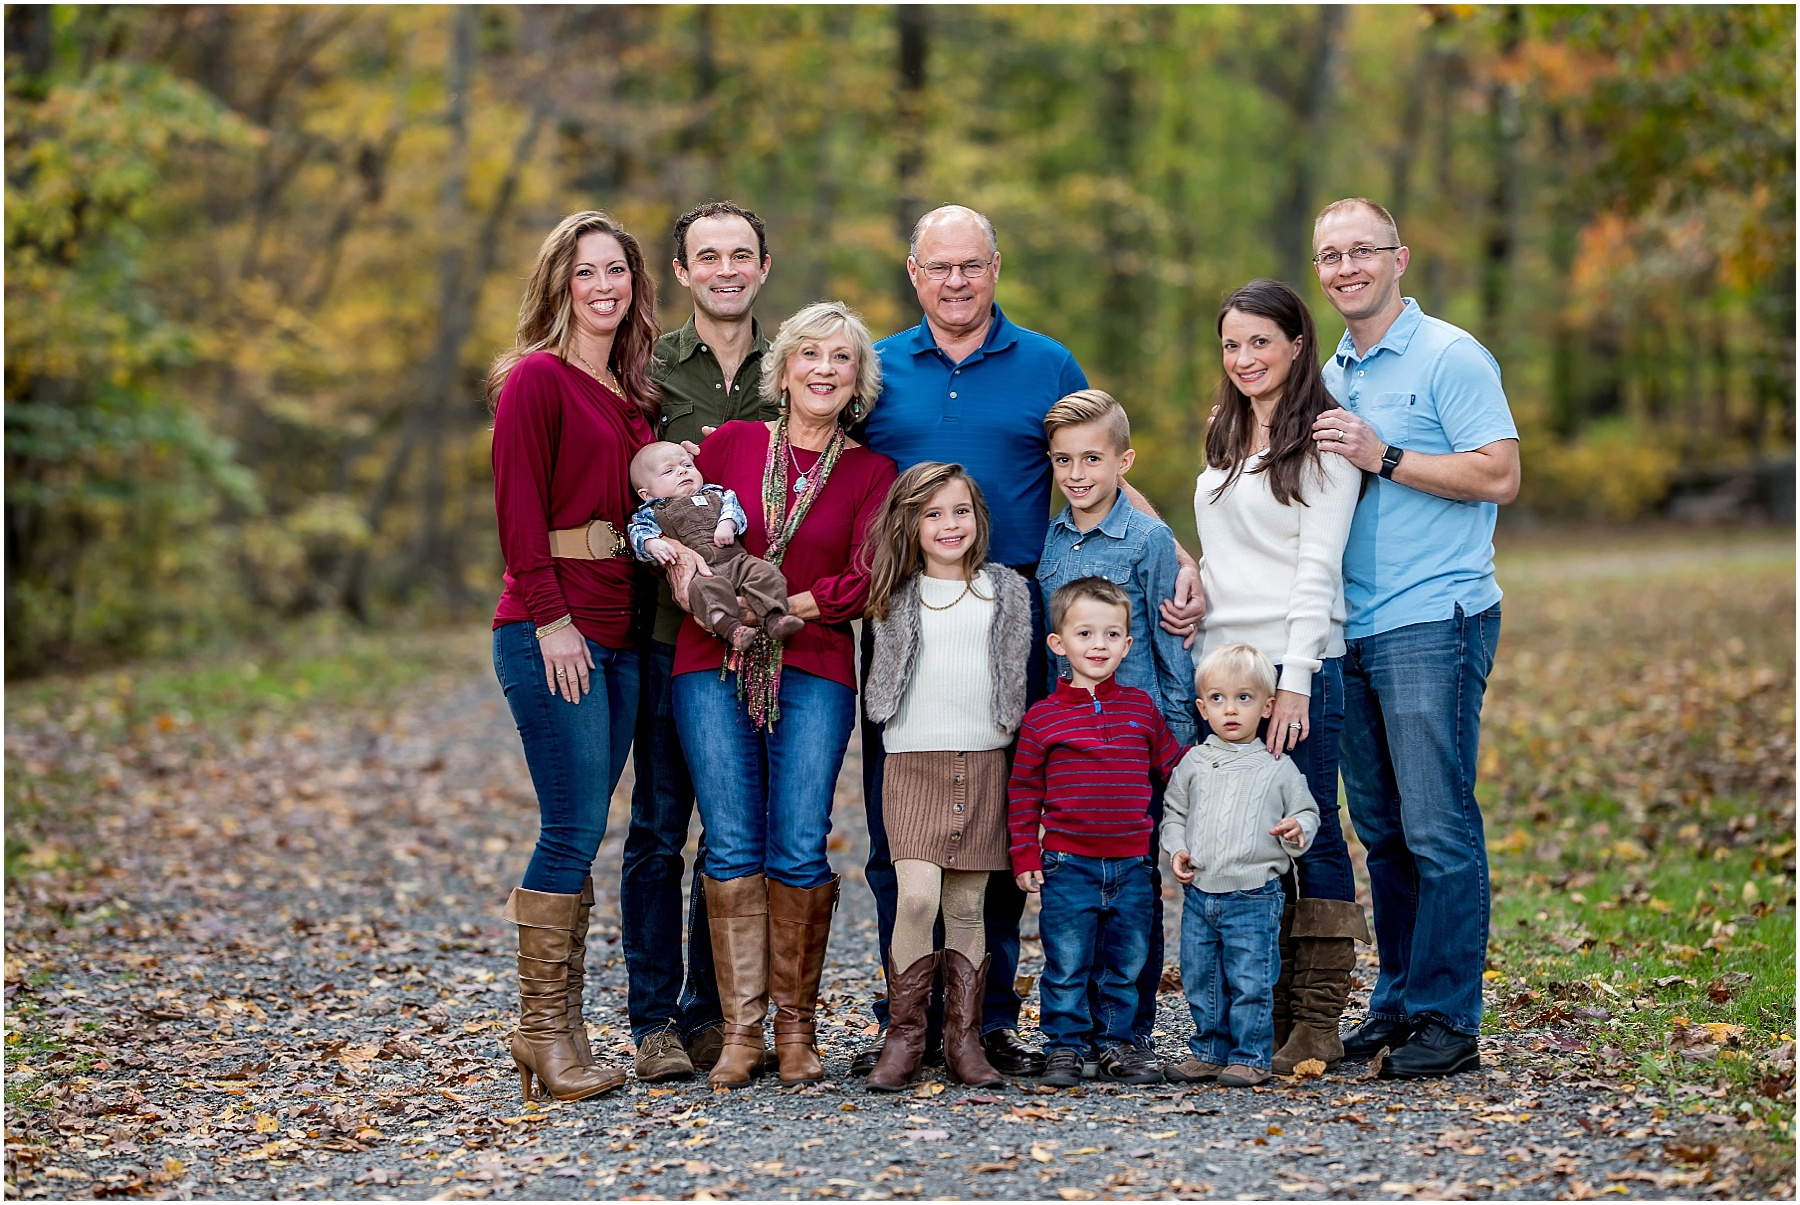 Silver Orchid Photography, Family Photography, Family Session, Outdoor Session, Extended Family Session, Green Lane Park, Green Lane, PA, Fall Sessions